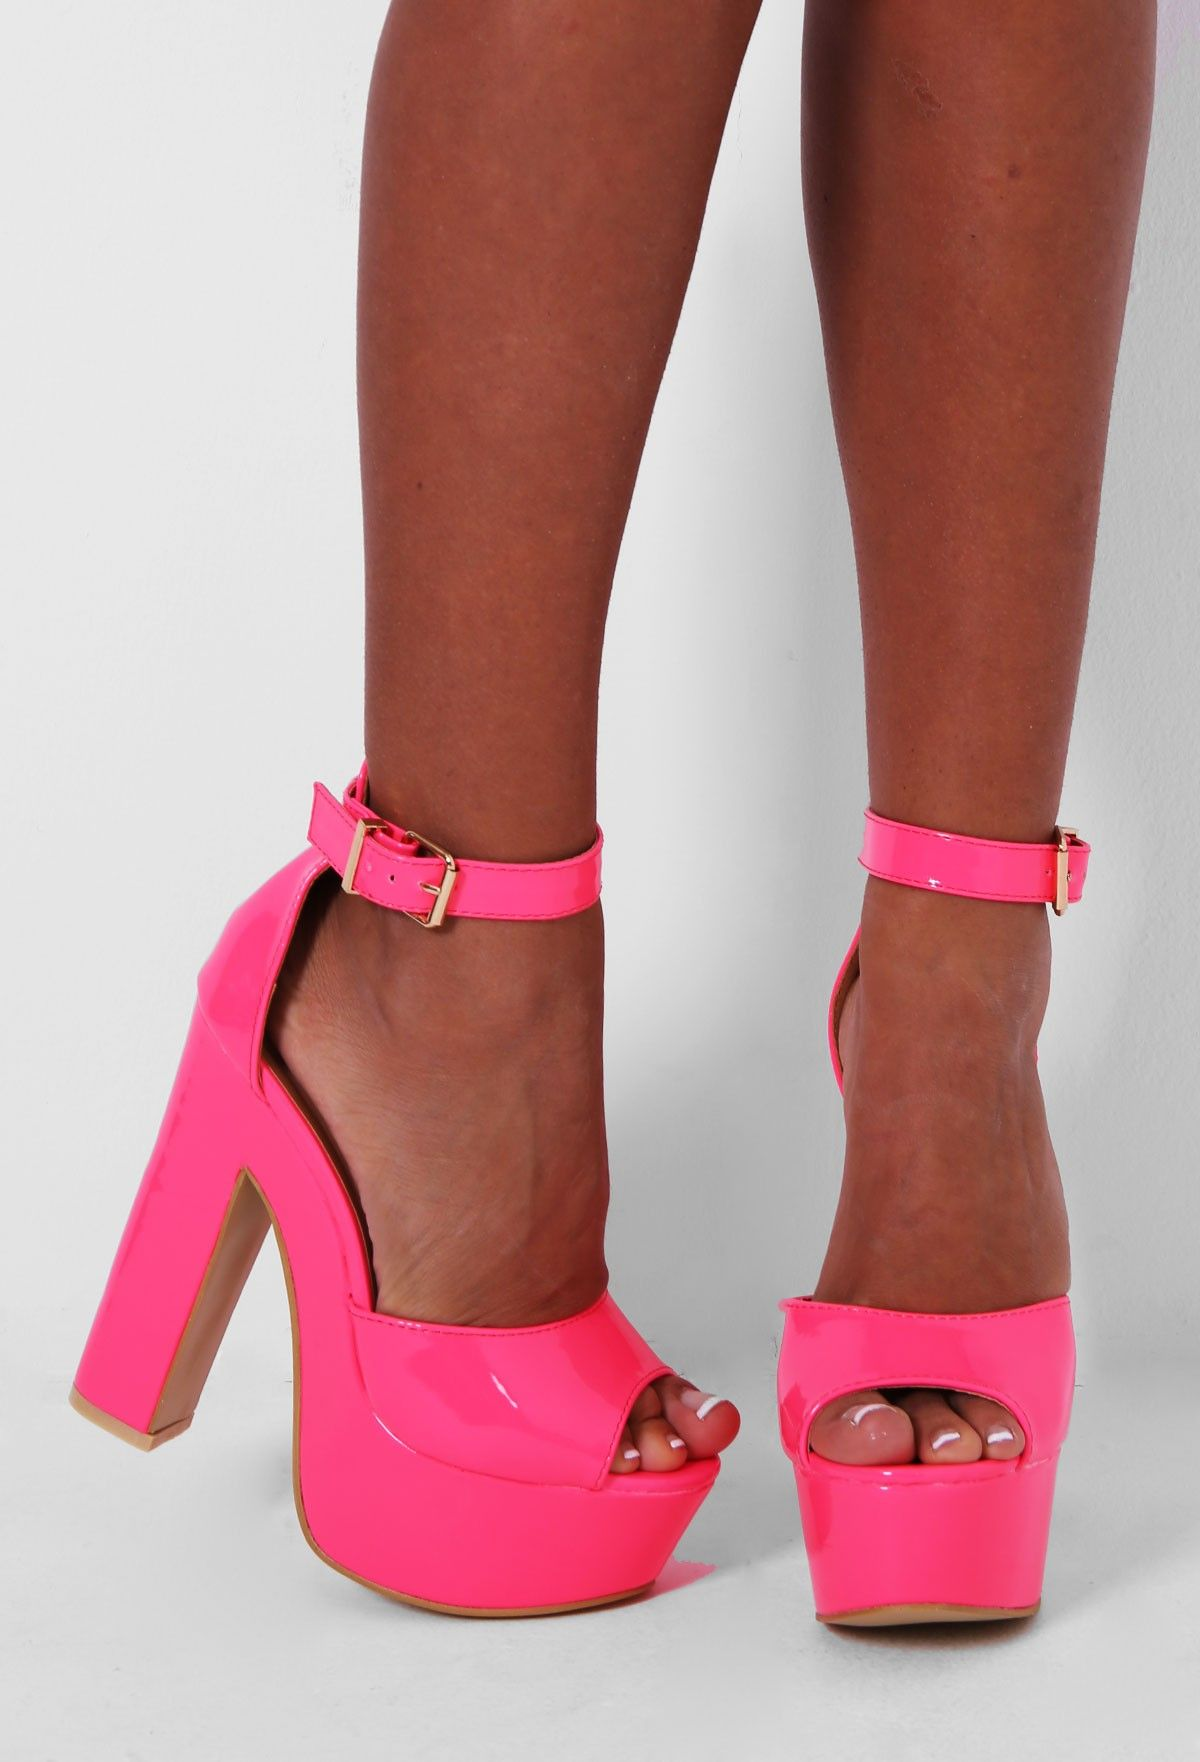 Pink Boutique Barbiella neon pink #platform #shoes http://www ...